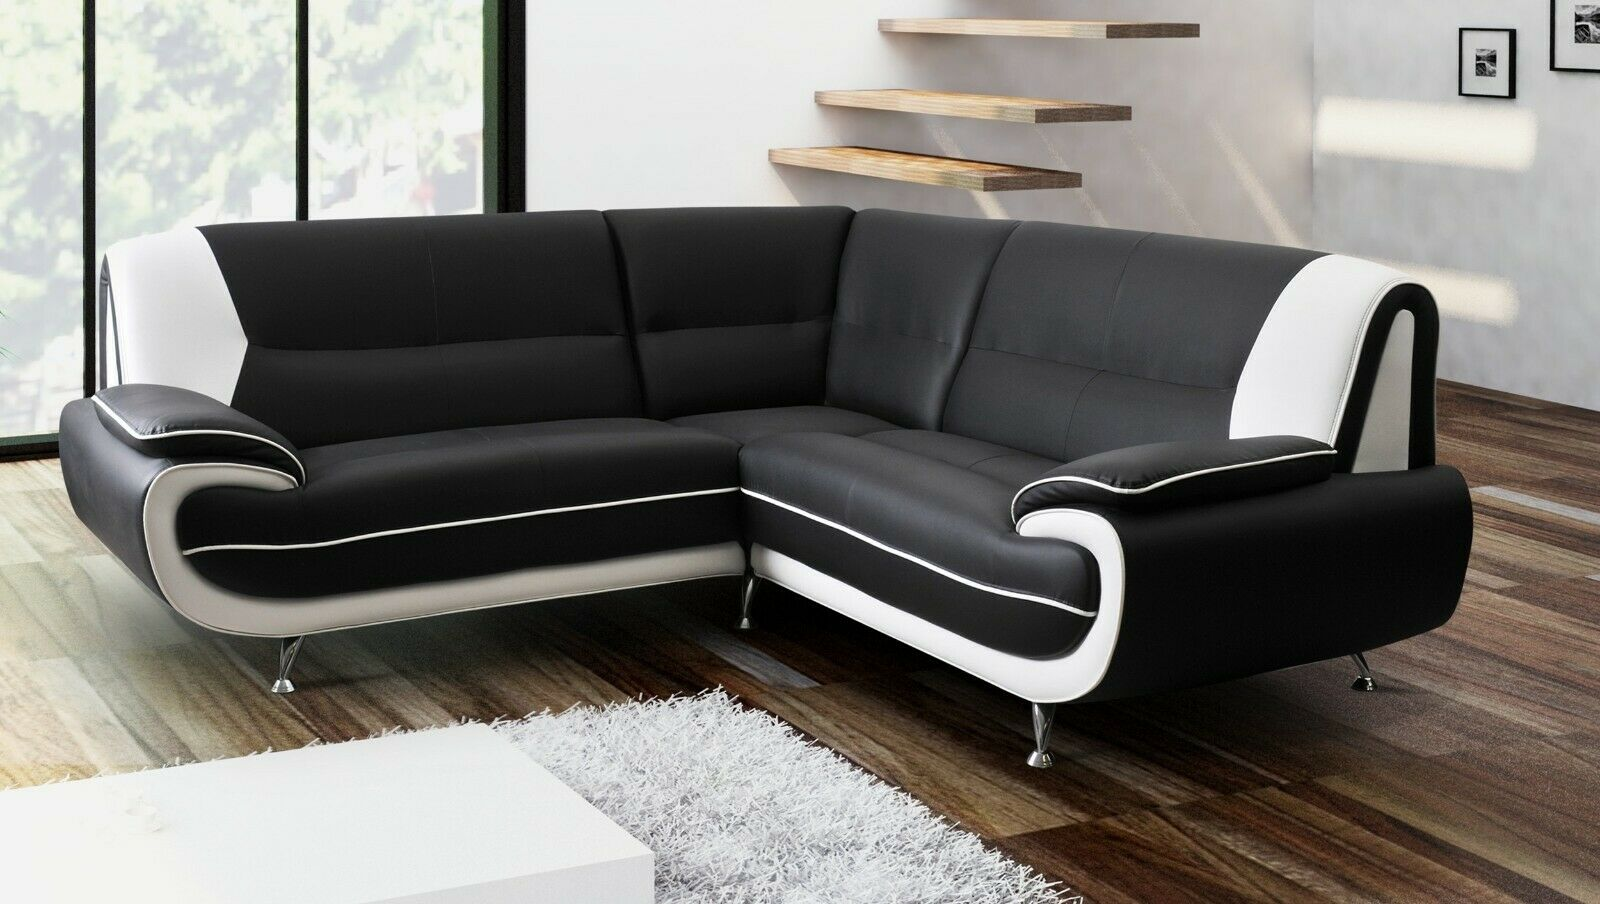 Tremendous 3 2 Seater Corner Sofa Black White Faux Leather Retro Dailytribune Chair Design For Home Dailytribuneorg